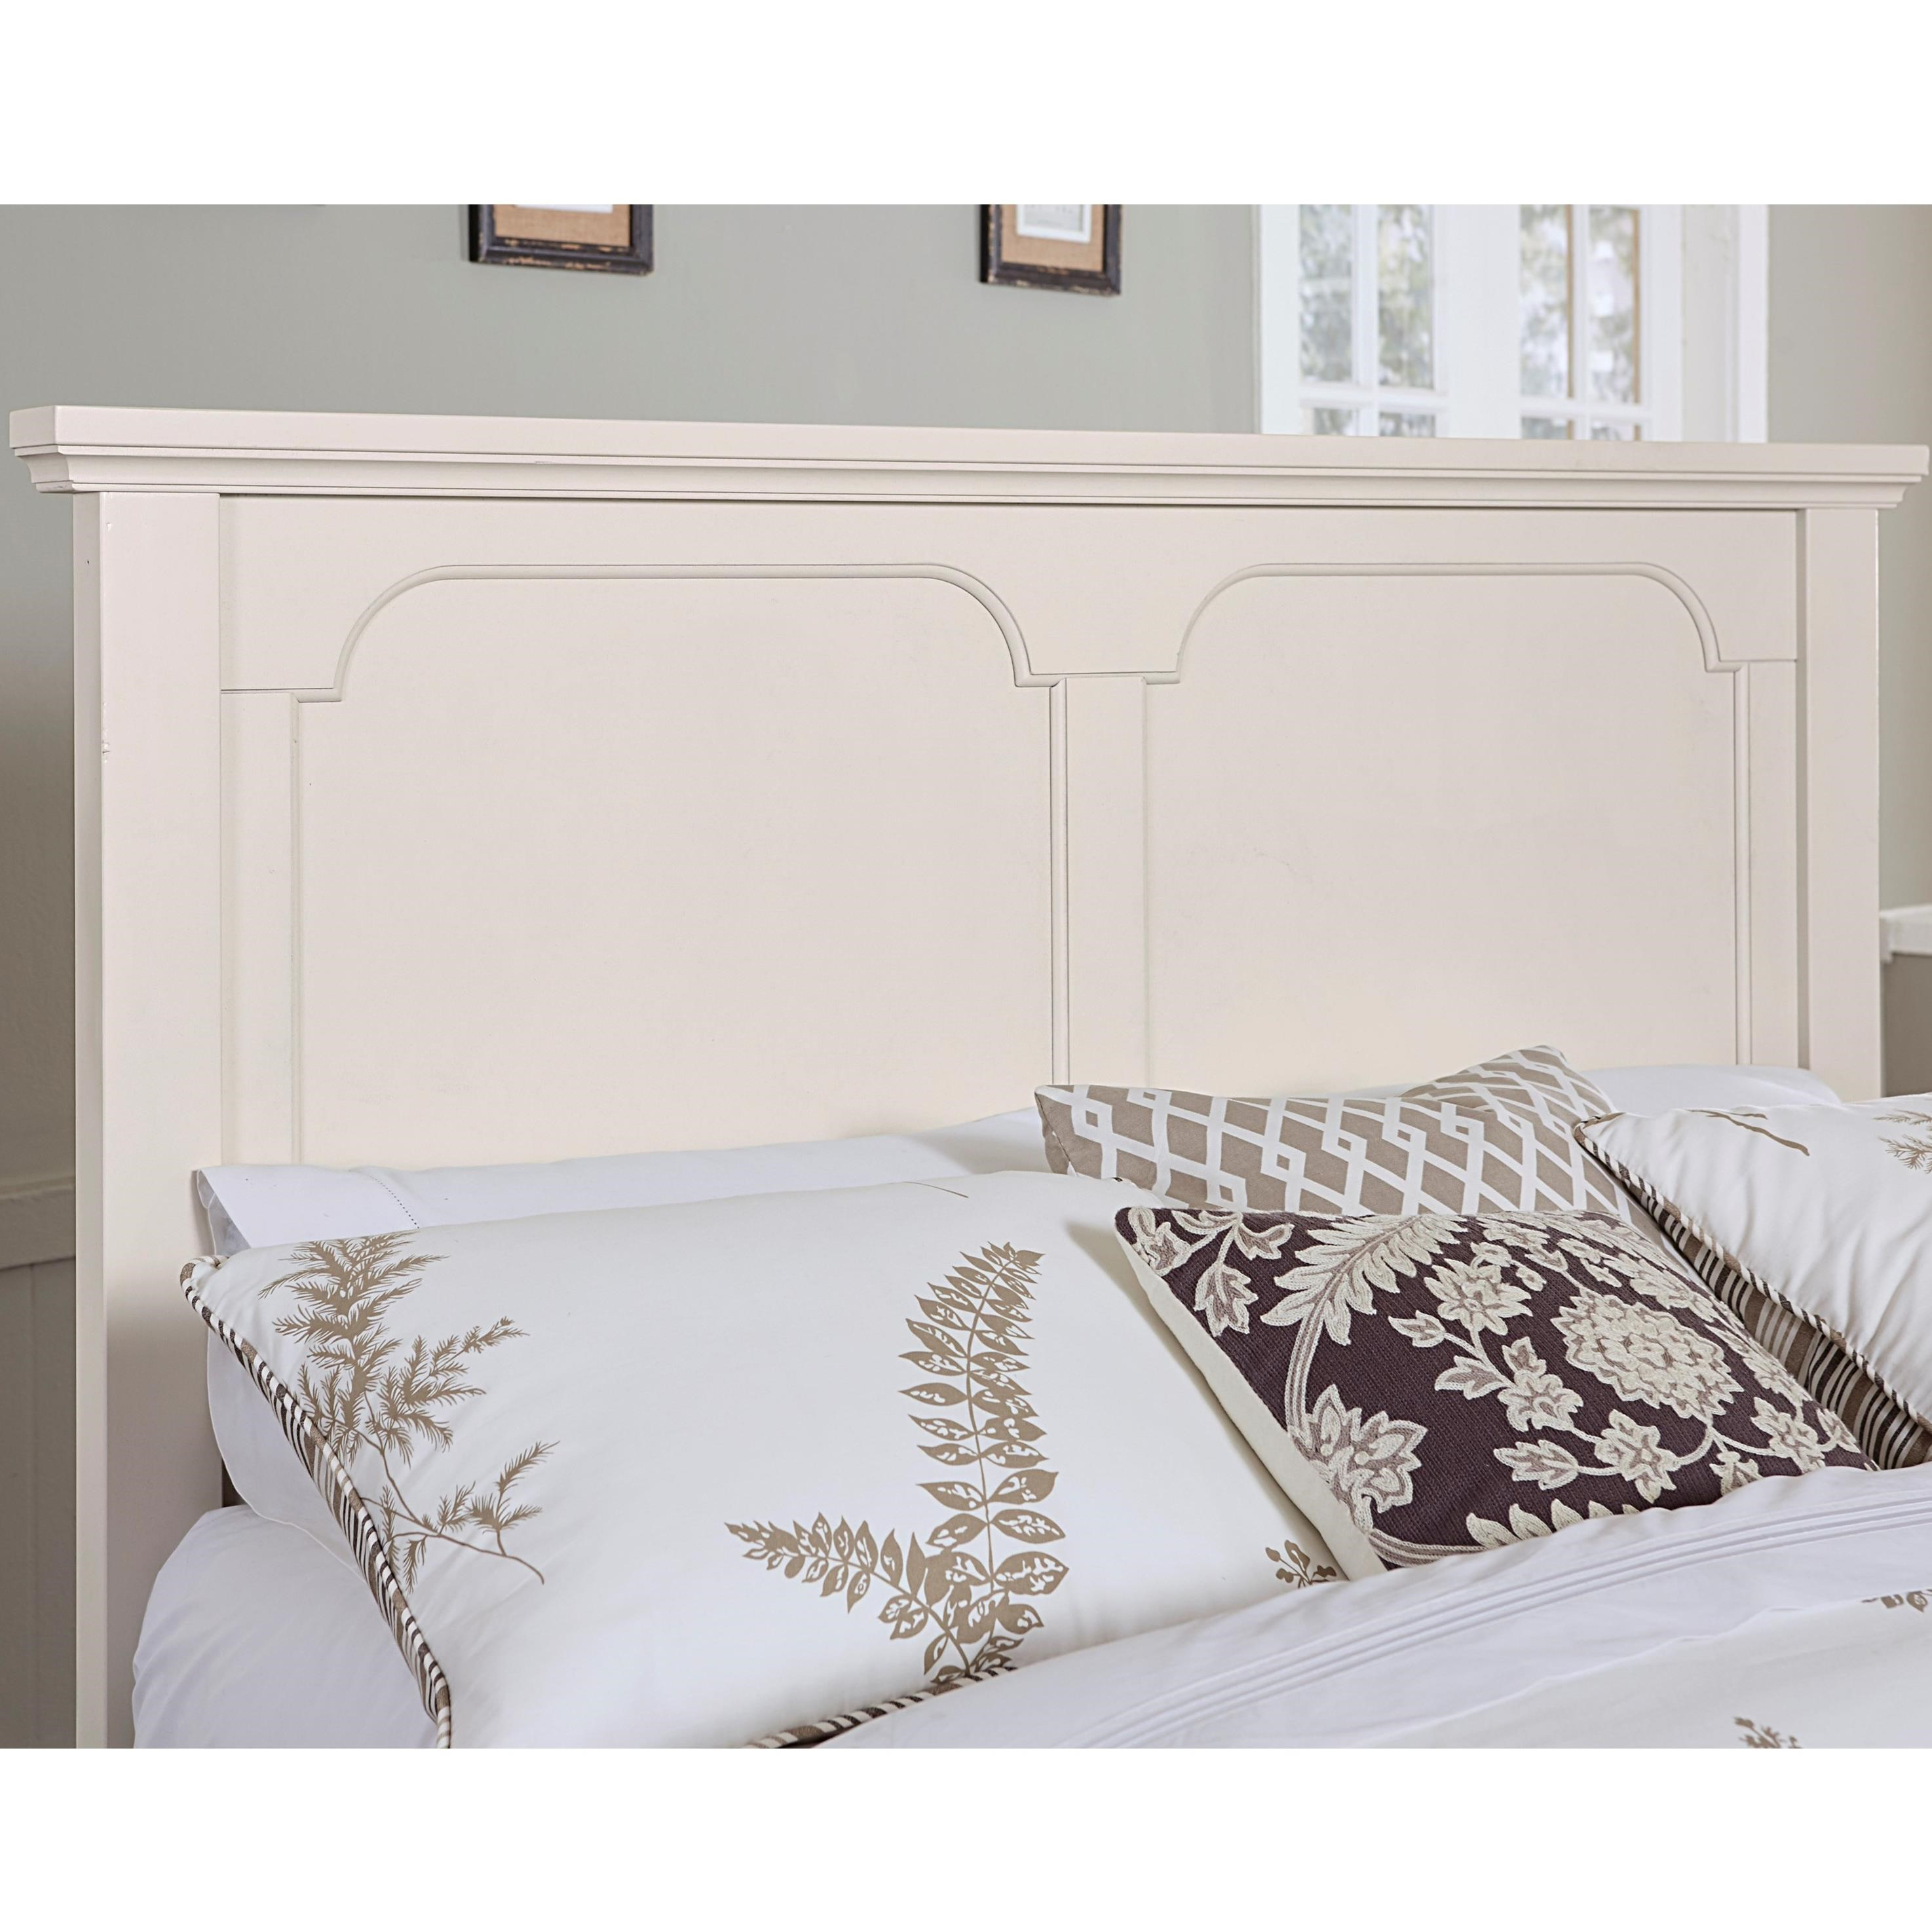 Bungalow Queen Panel Headboard by Laurel Mercantile Co. at Esprit Decor Home Furnishings